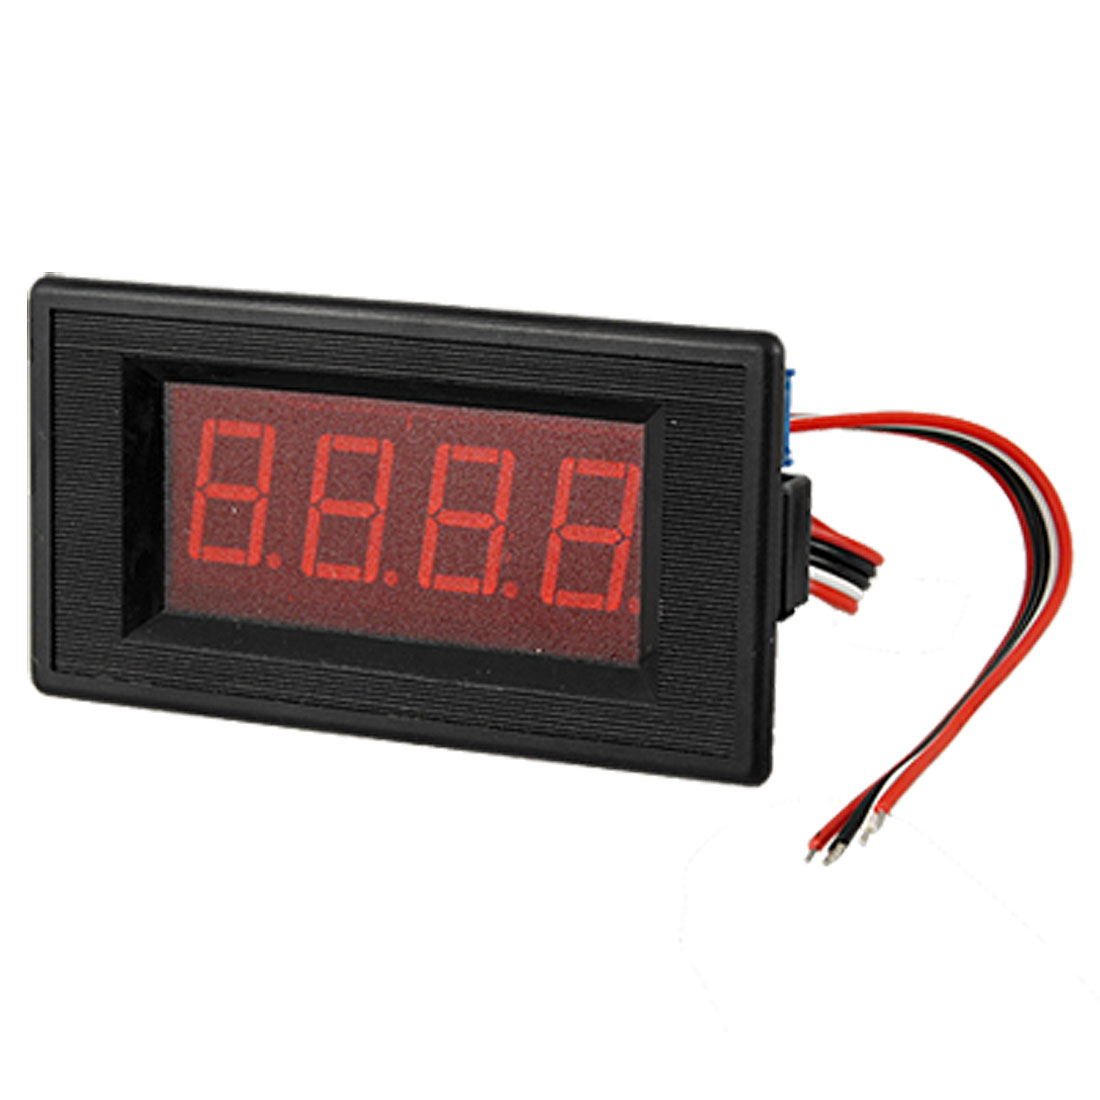 Car Boat Gauge Ampere LED Panel Meter DC 300A 75MV